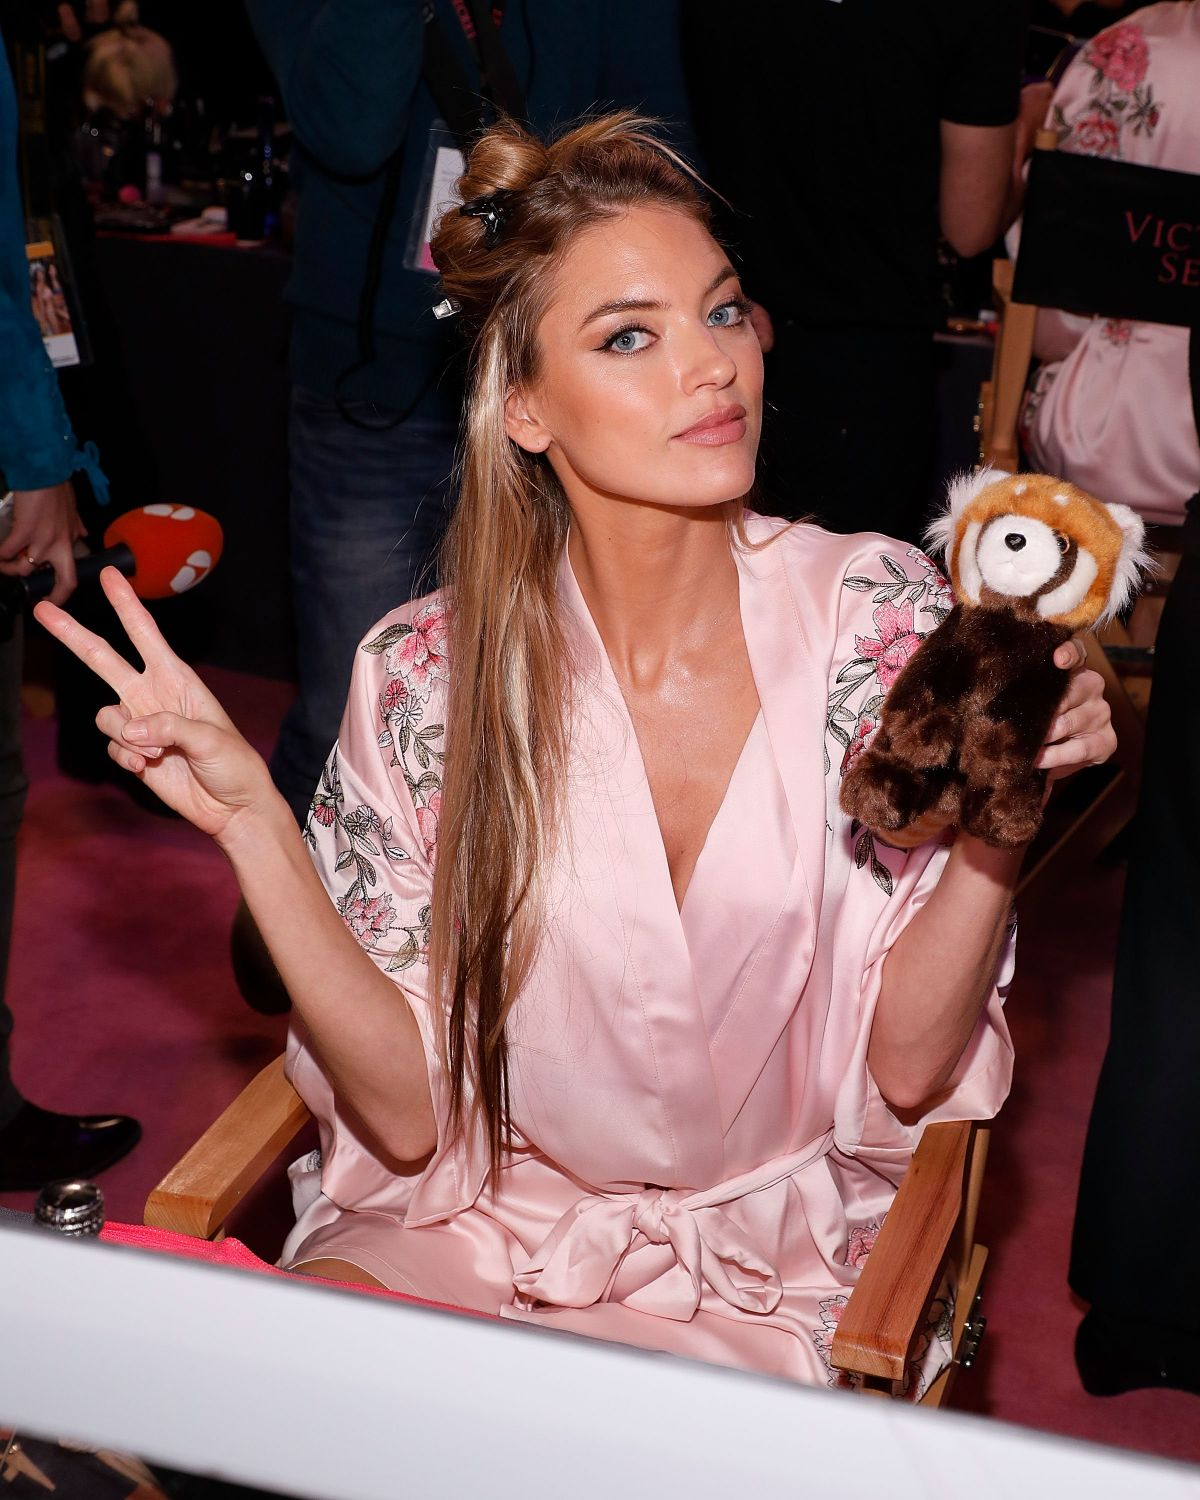 bf35a23b6c9 MARTHA HUNT on the Backstage at 2017 VS Fashion Show in Shanghai 11 20 2017